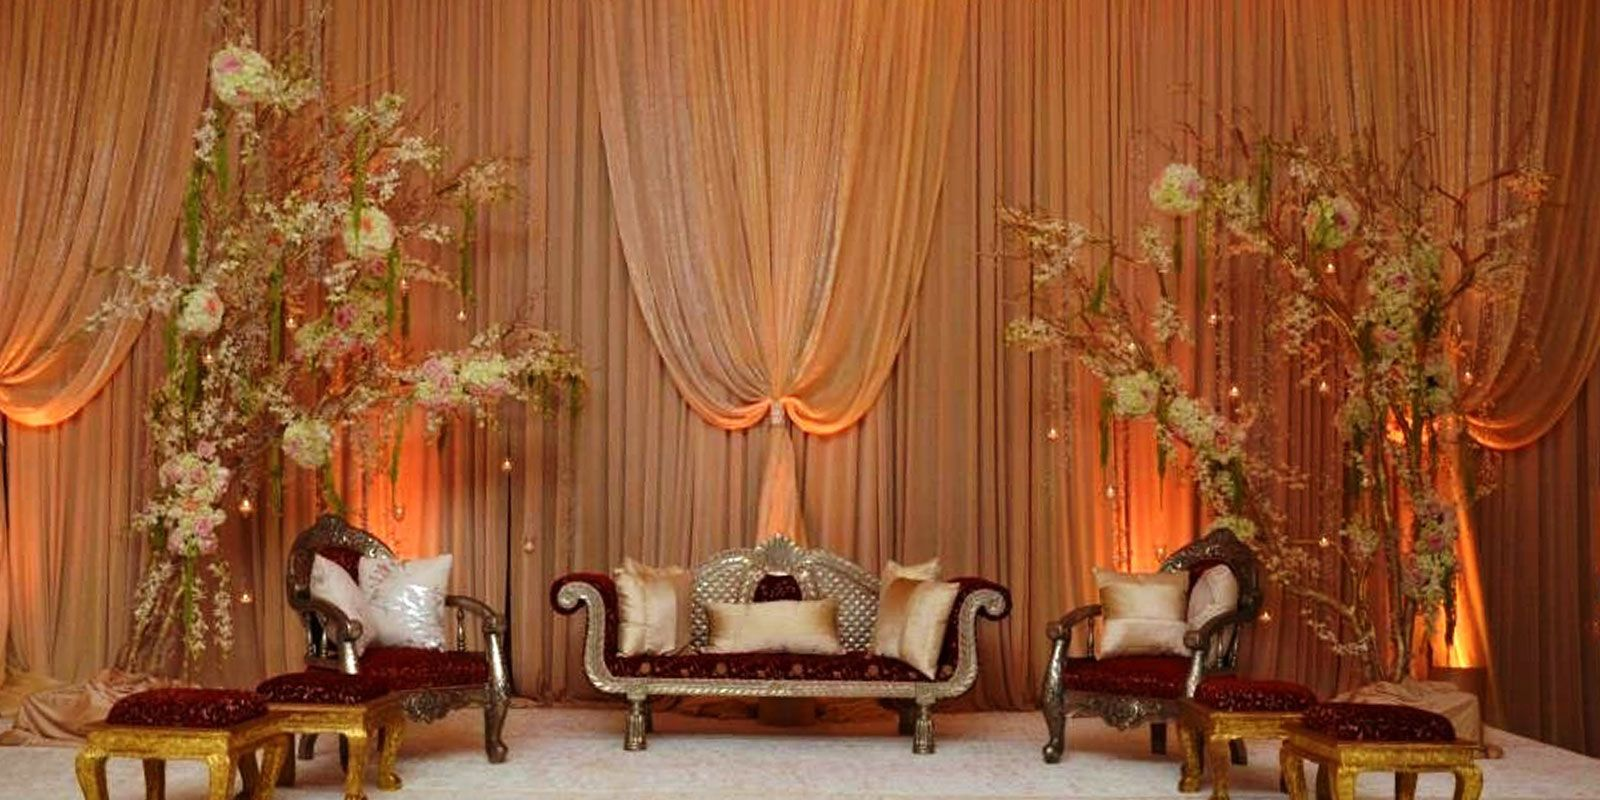 winter engagement photo ideas chicago - Muslim wedding stage Decoration